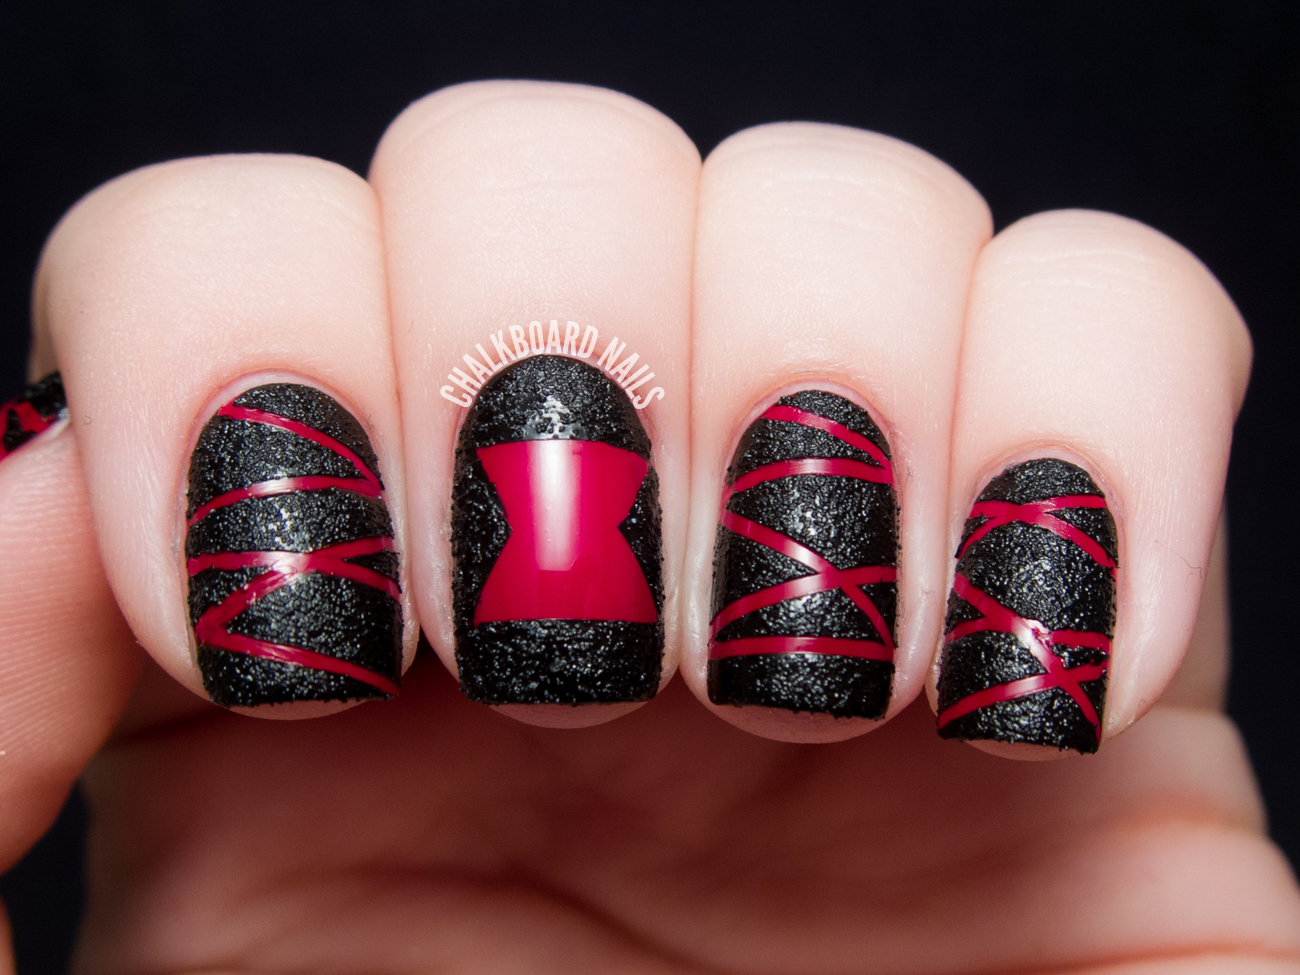 Black Widow Nail Art by @chalkboardnails